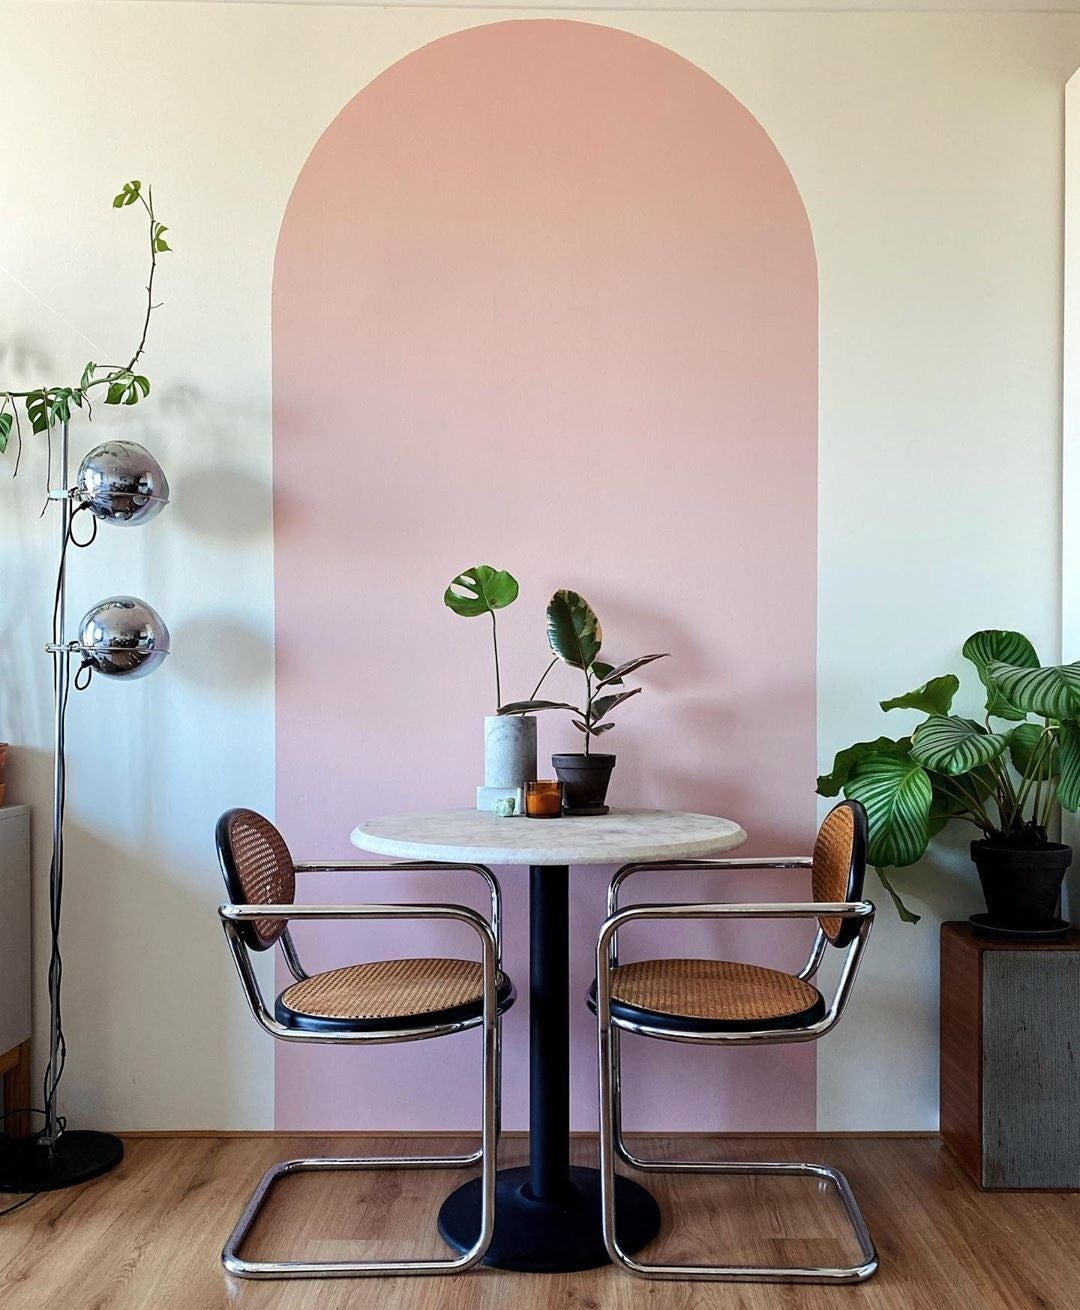 A pink archway is painted on a white wall behind a table and two chairs